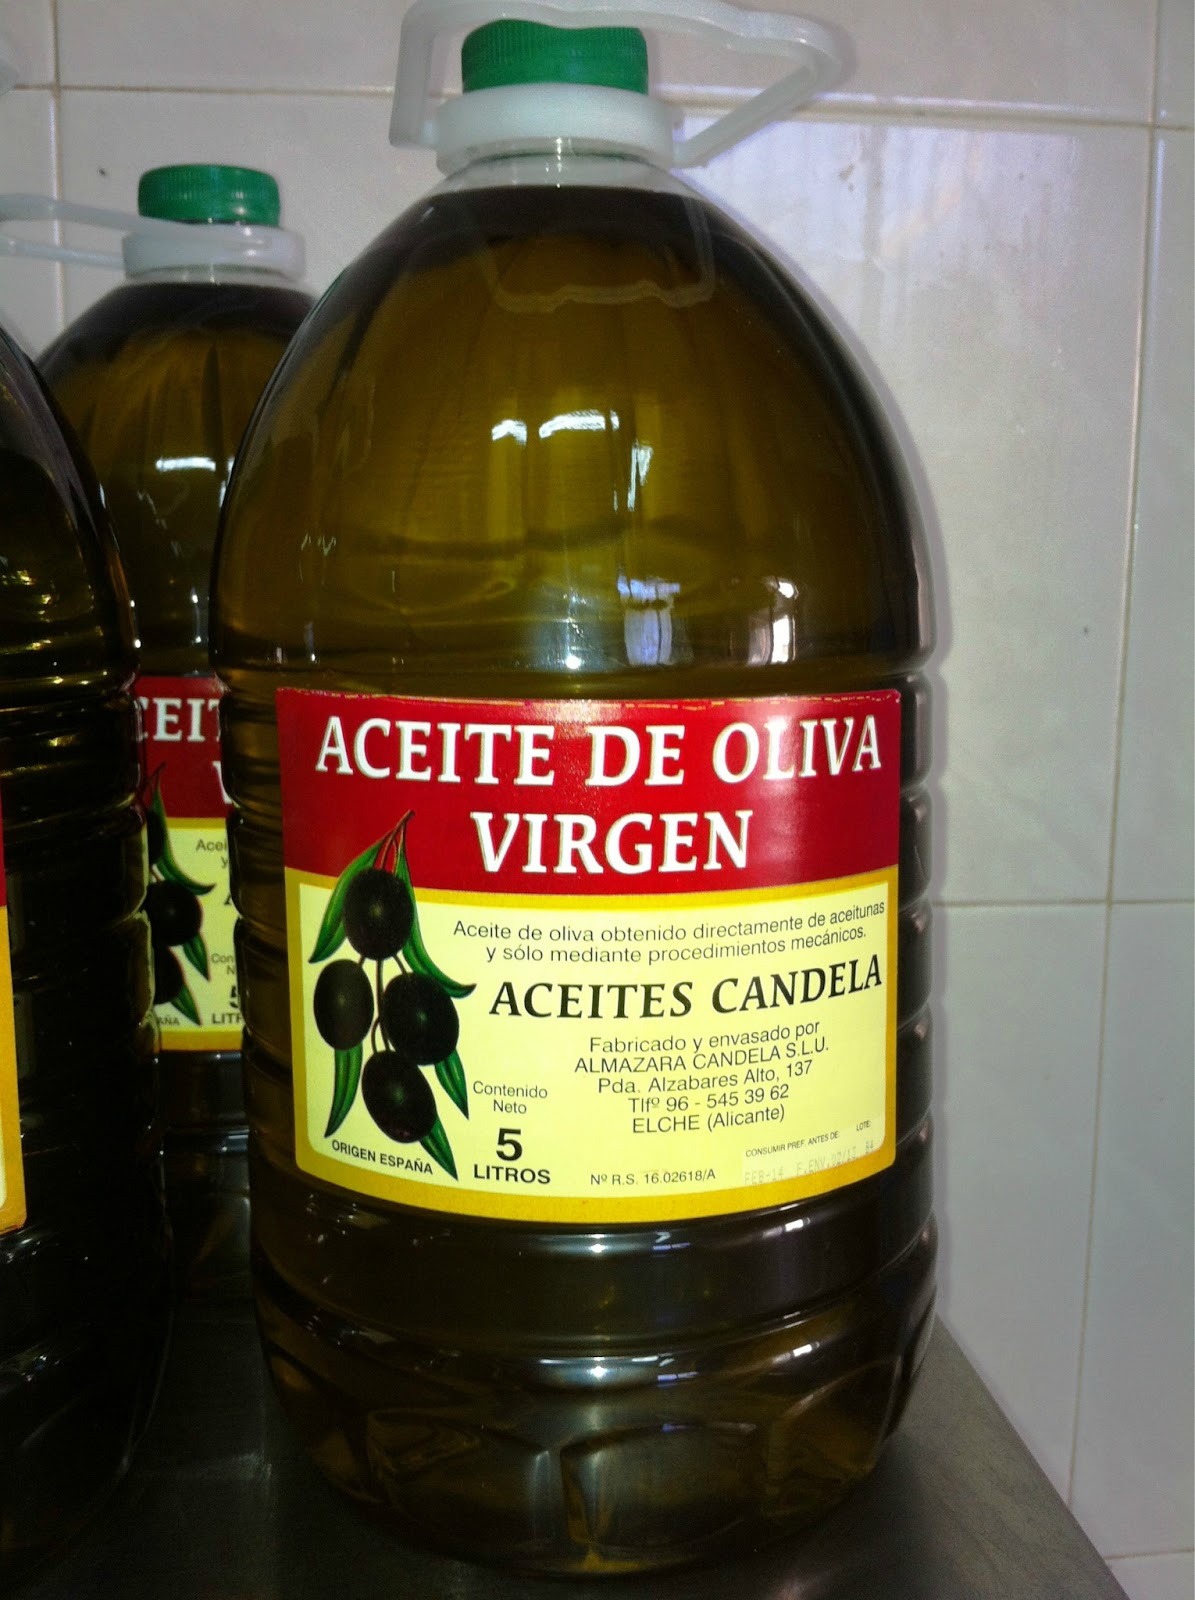 Virgin olive oil.